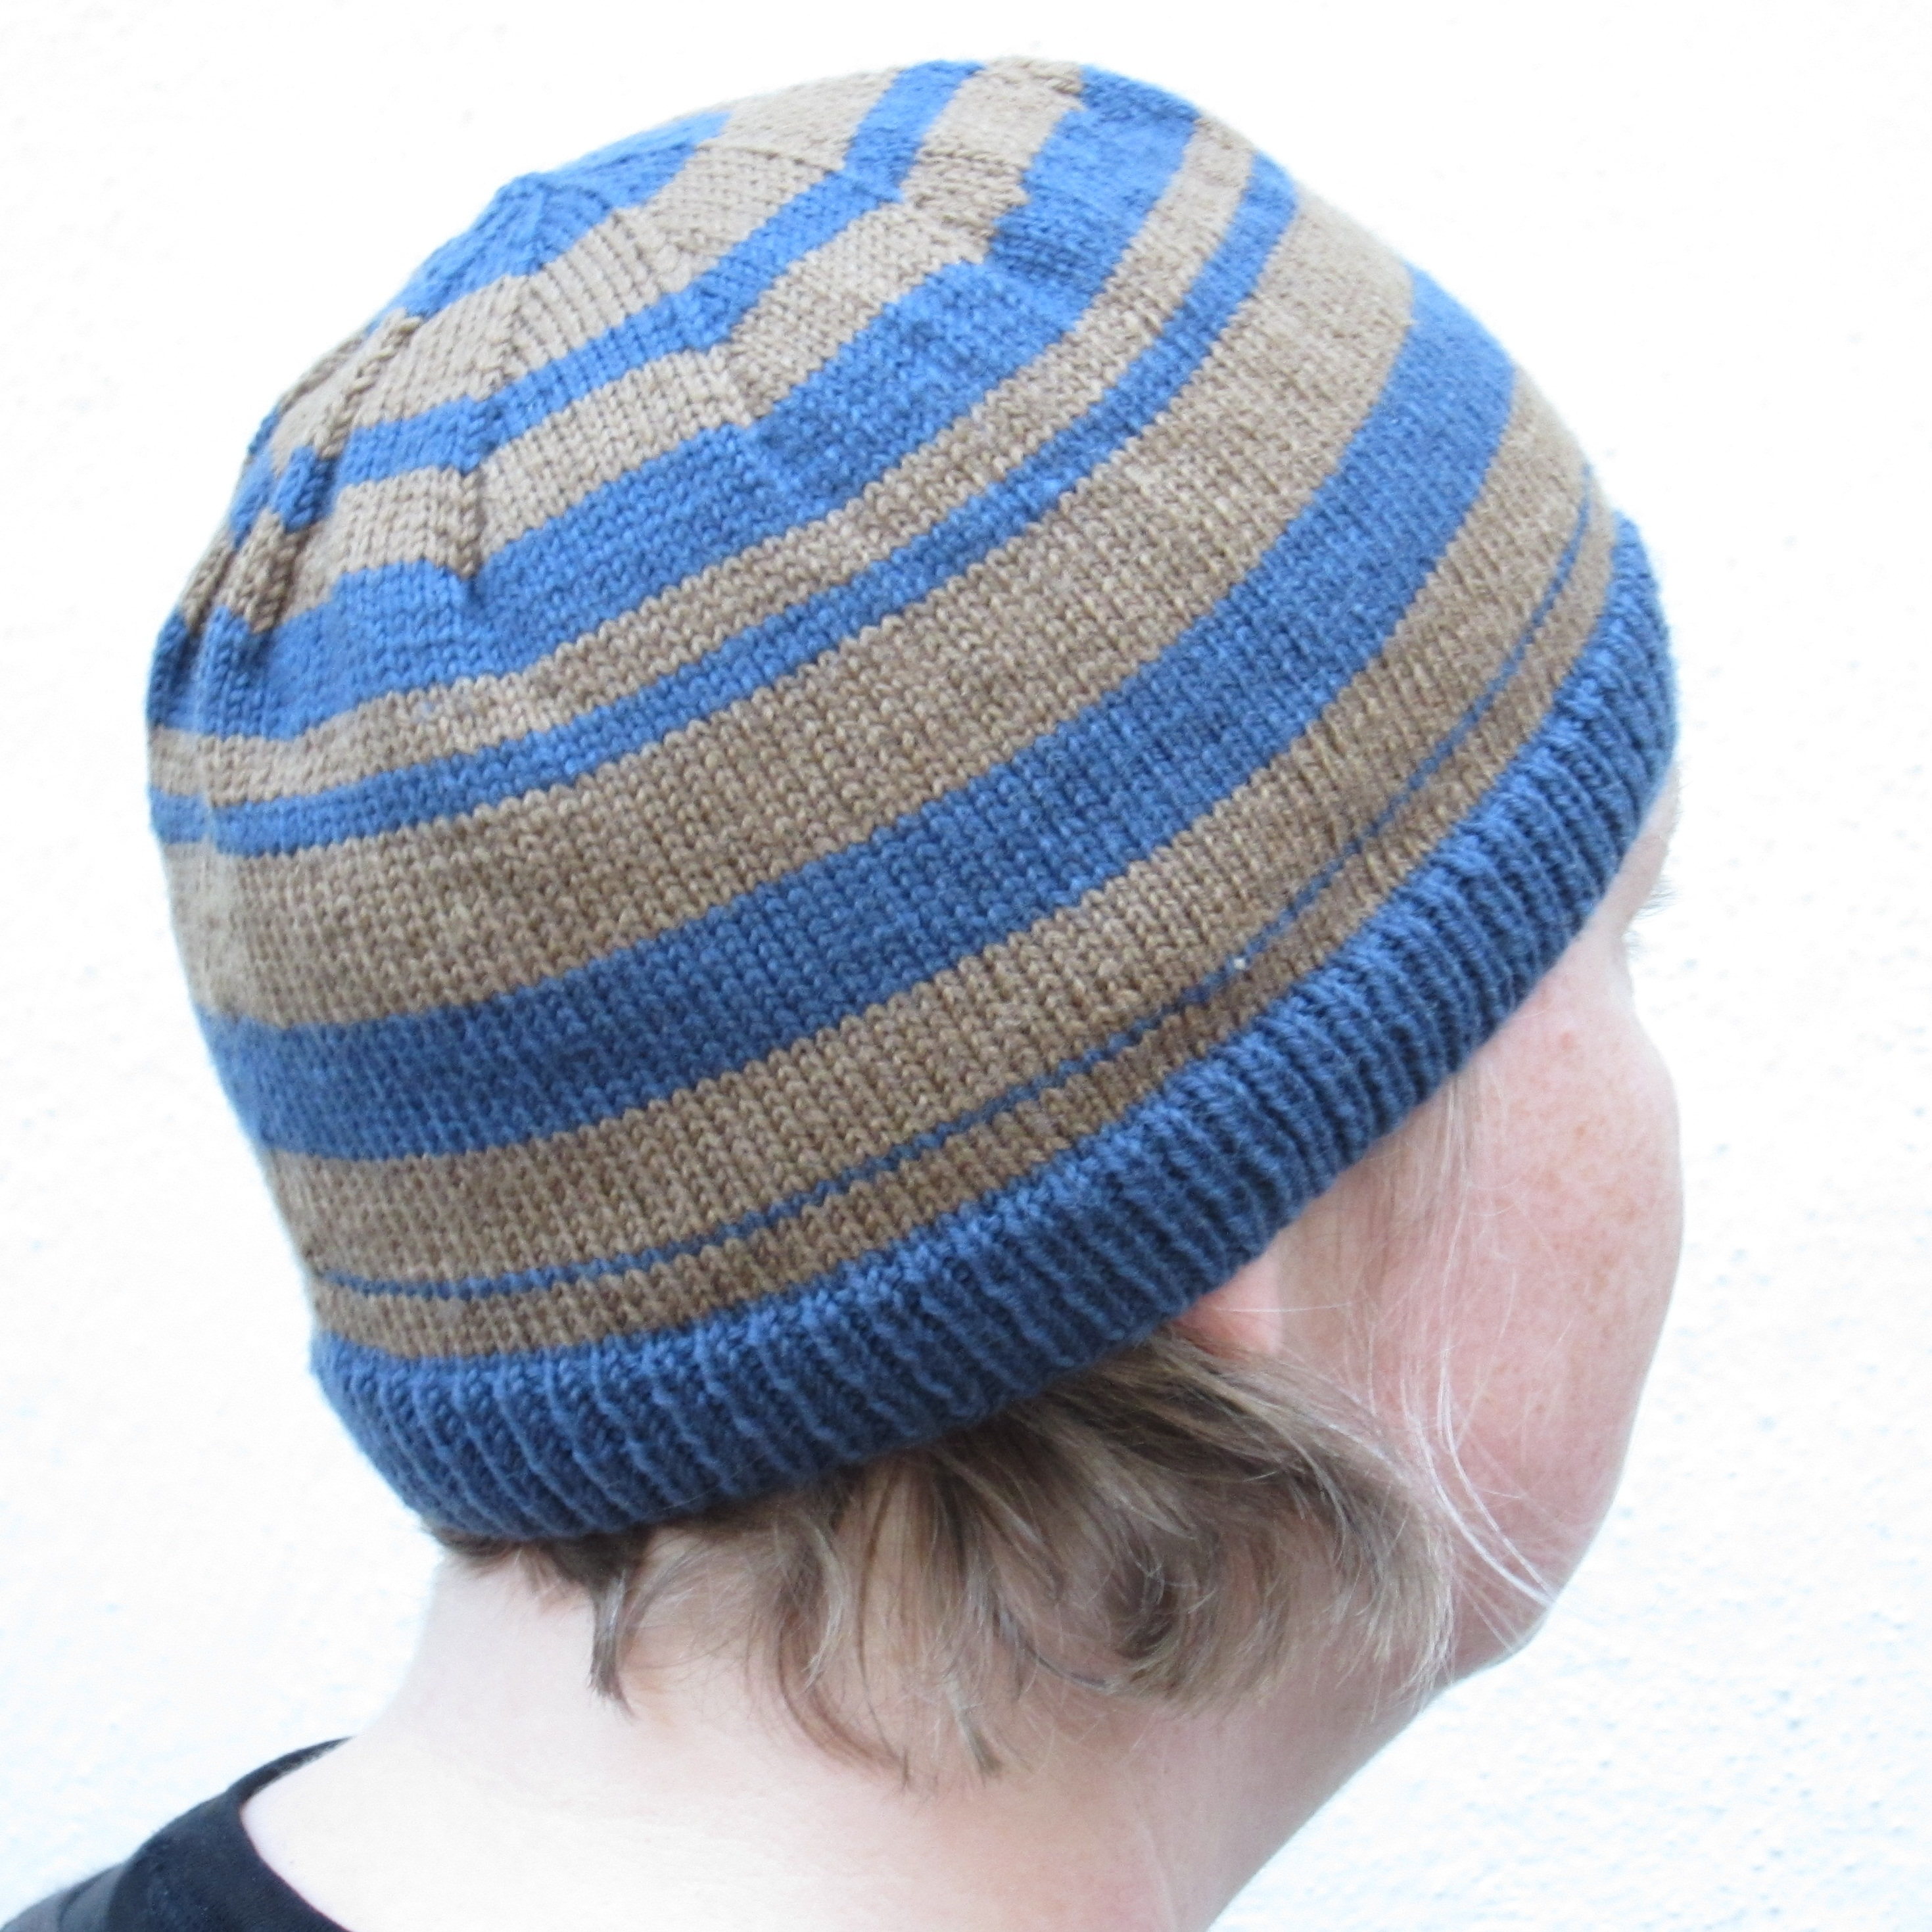 Knitting Patterns Caps : Random Factor Hat   Quick Free Knitting Pattern